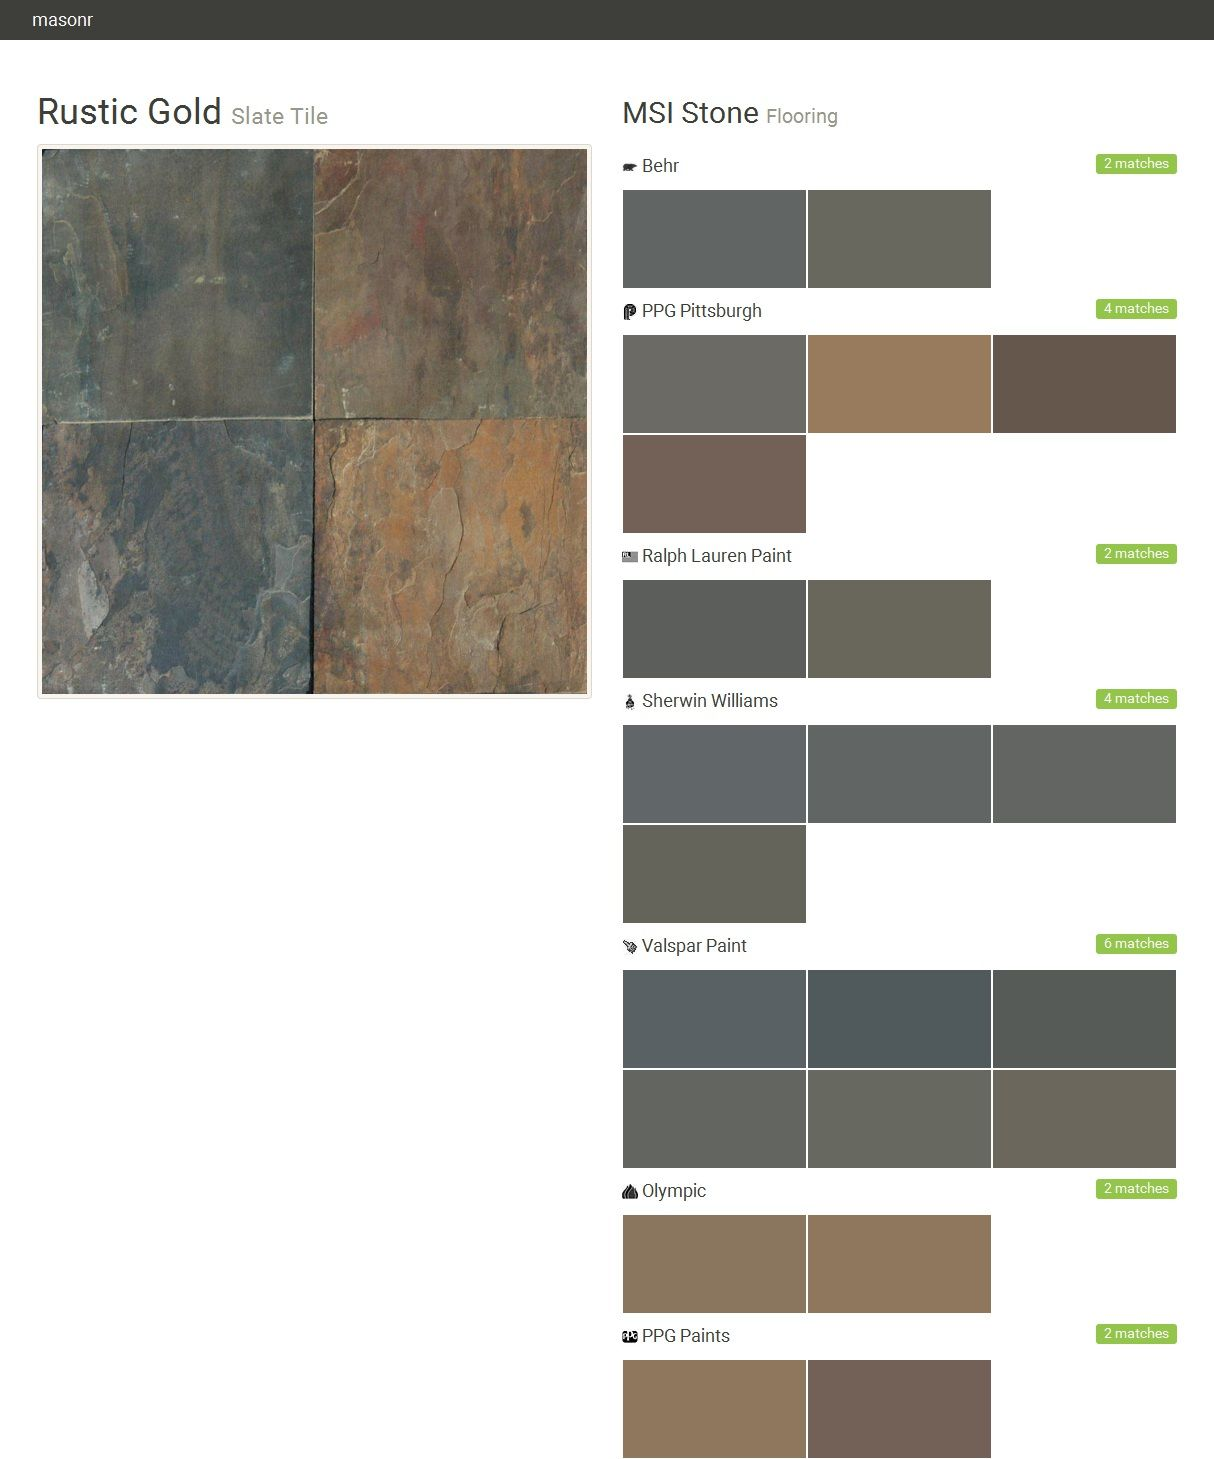 Rustic Gold Slate Tile Flooring Msi Stone Behr Ppg Pittsburgh